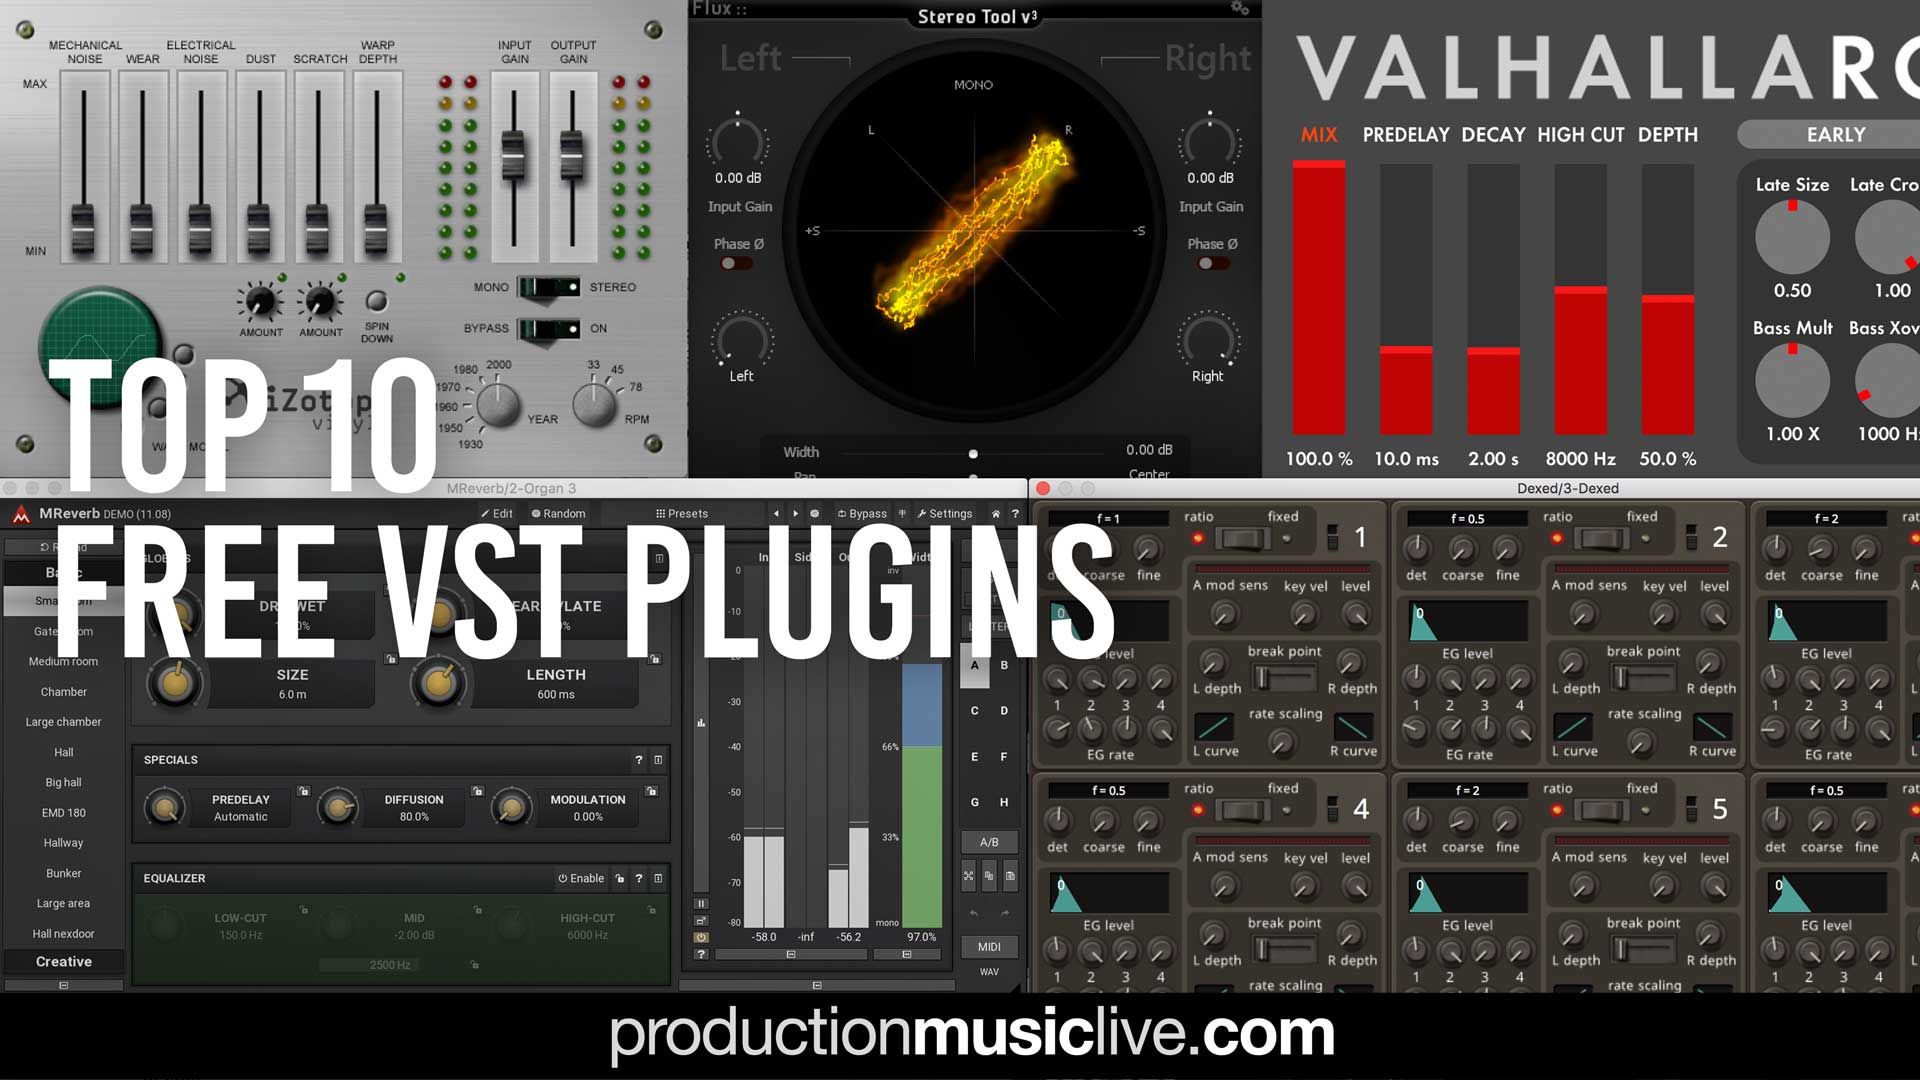 Best Bass Vst 2019 Top 10 Free VST Plugins (2019)